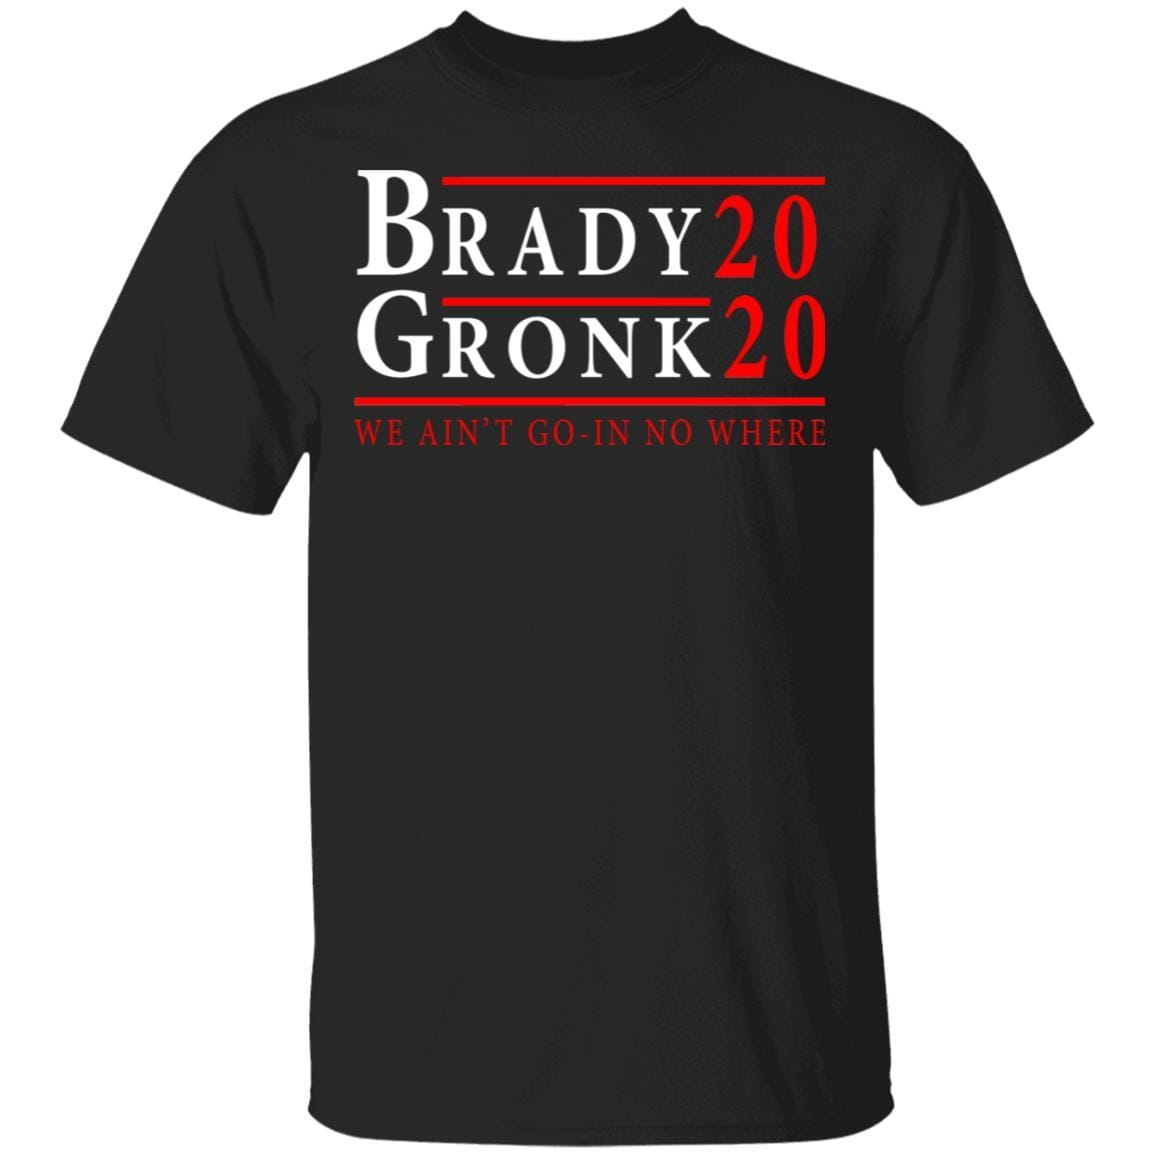 Brady Gronk 2020 Presidental We Ain't Go-In No Where T-Shirts, Hoodies 1049-9953-87129704-48144 - Tee Ript